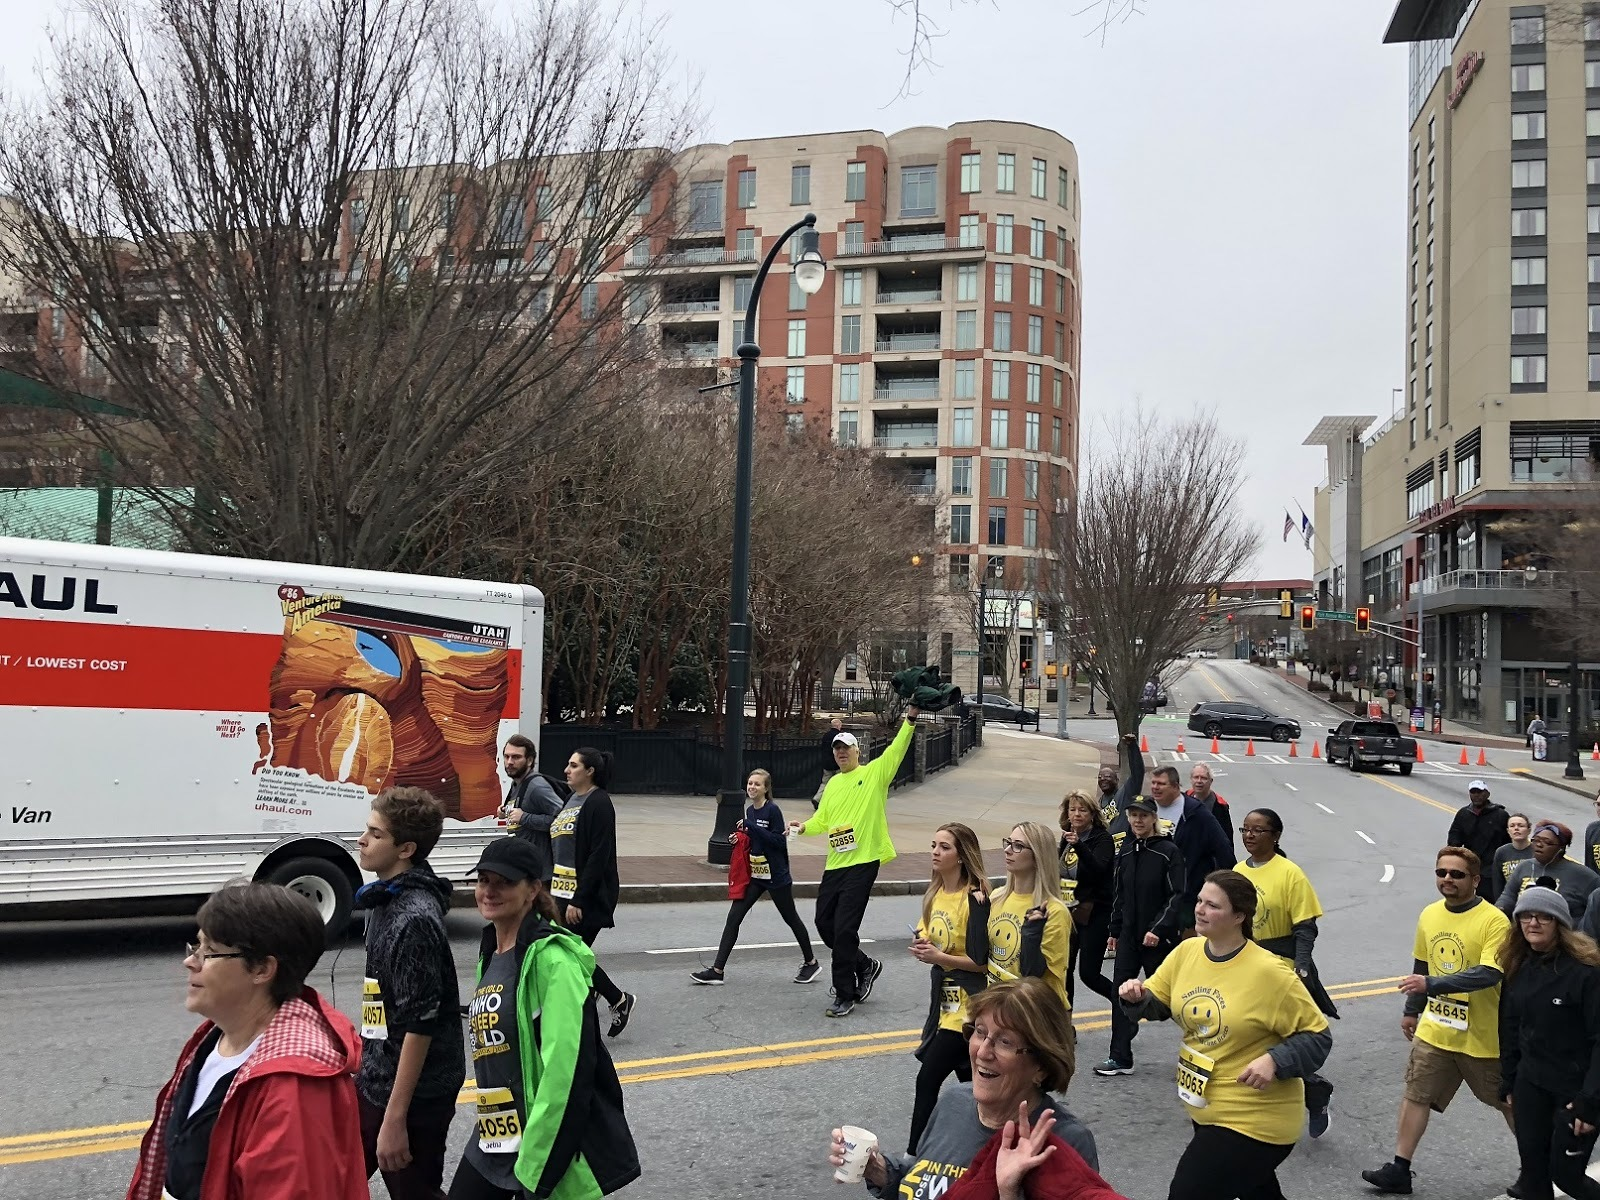 Candid image of a charity run with people running in different colored shirts in the street